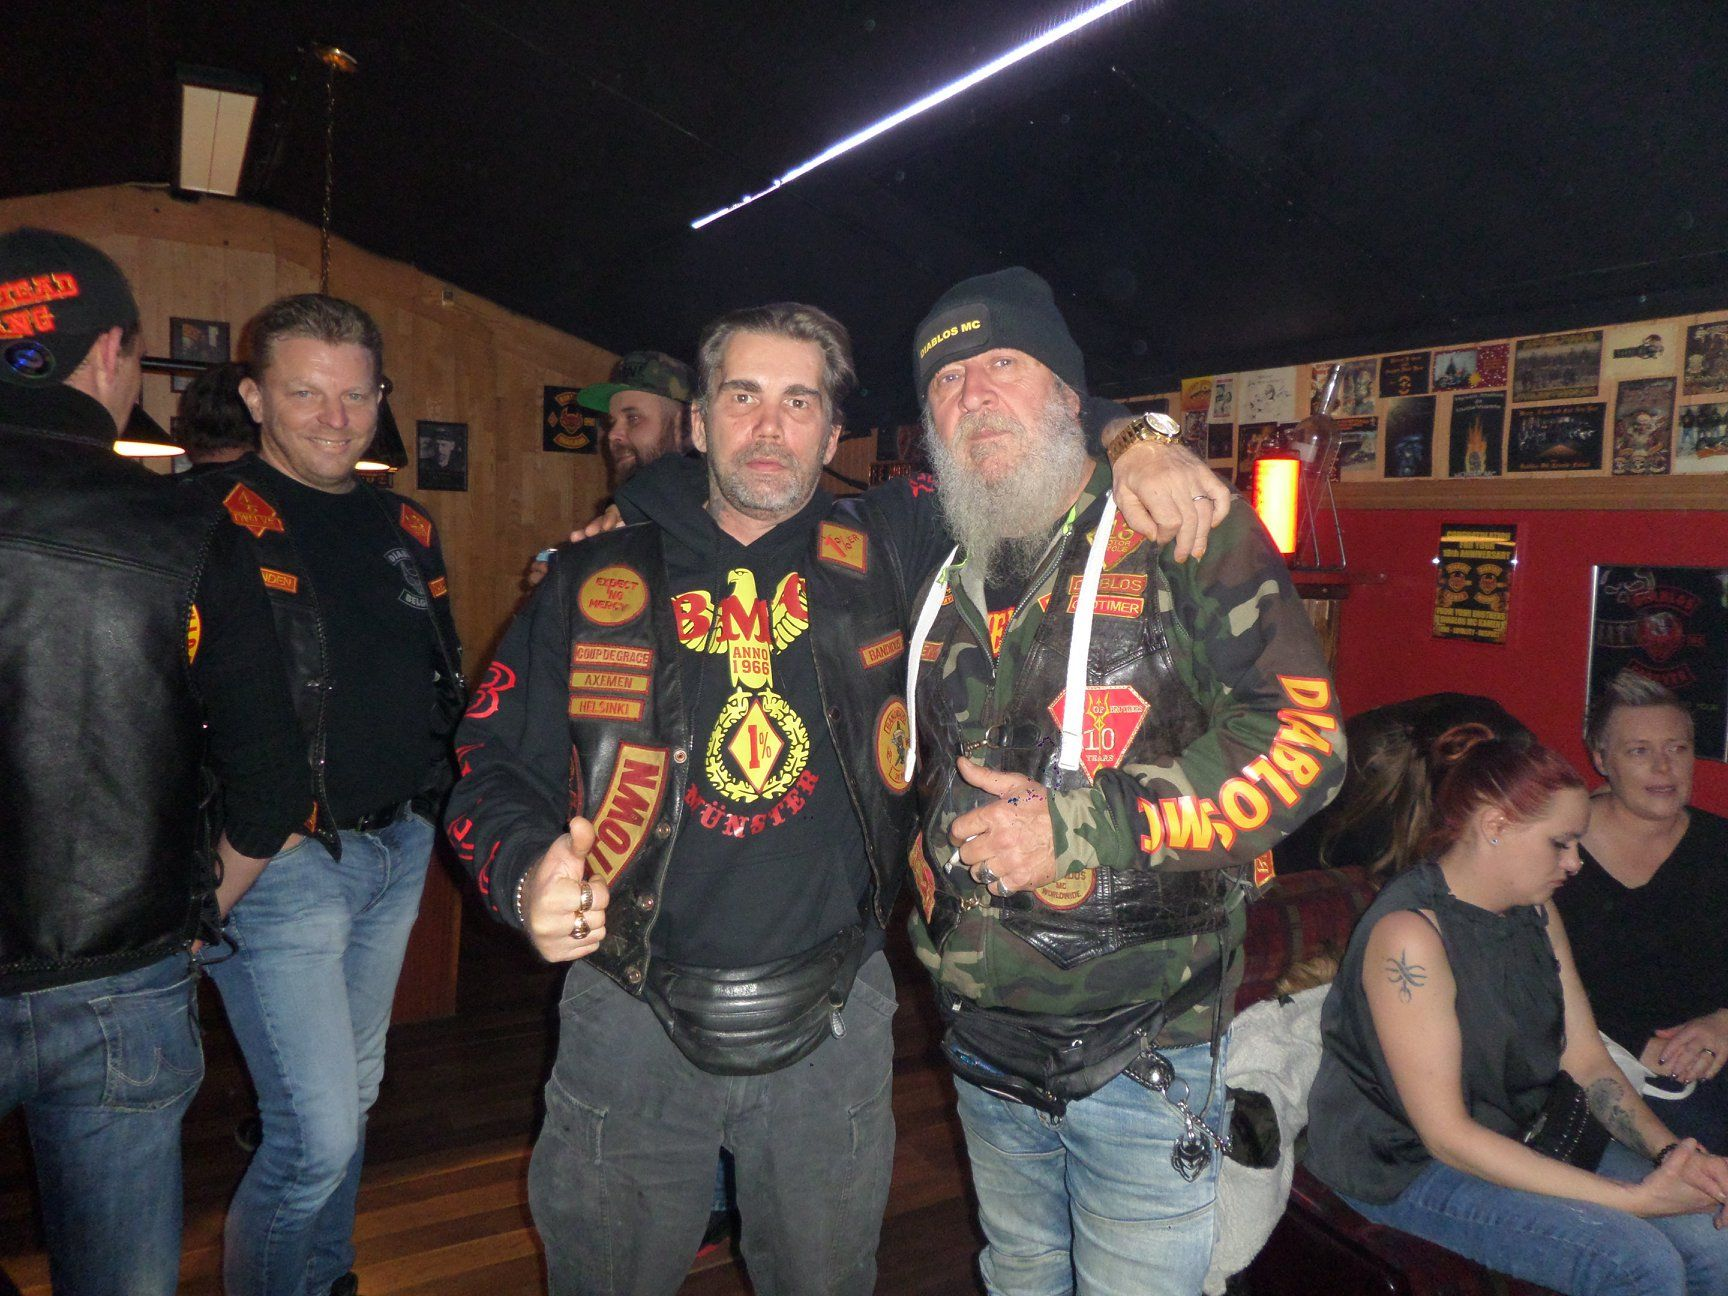 On the left Kai Tapio Blom, last of the Axemen - founder members of